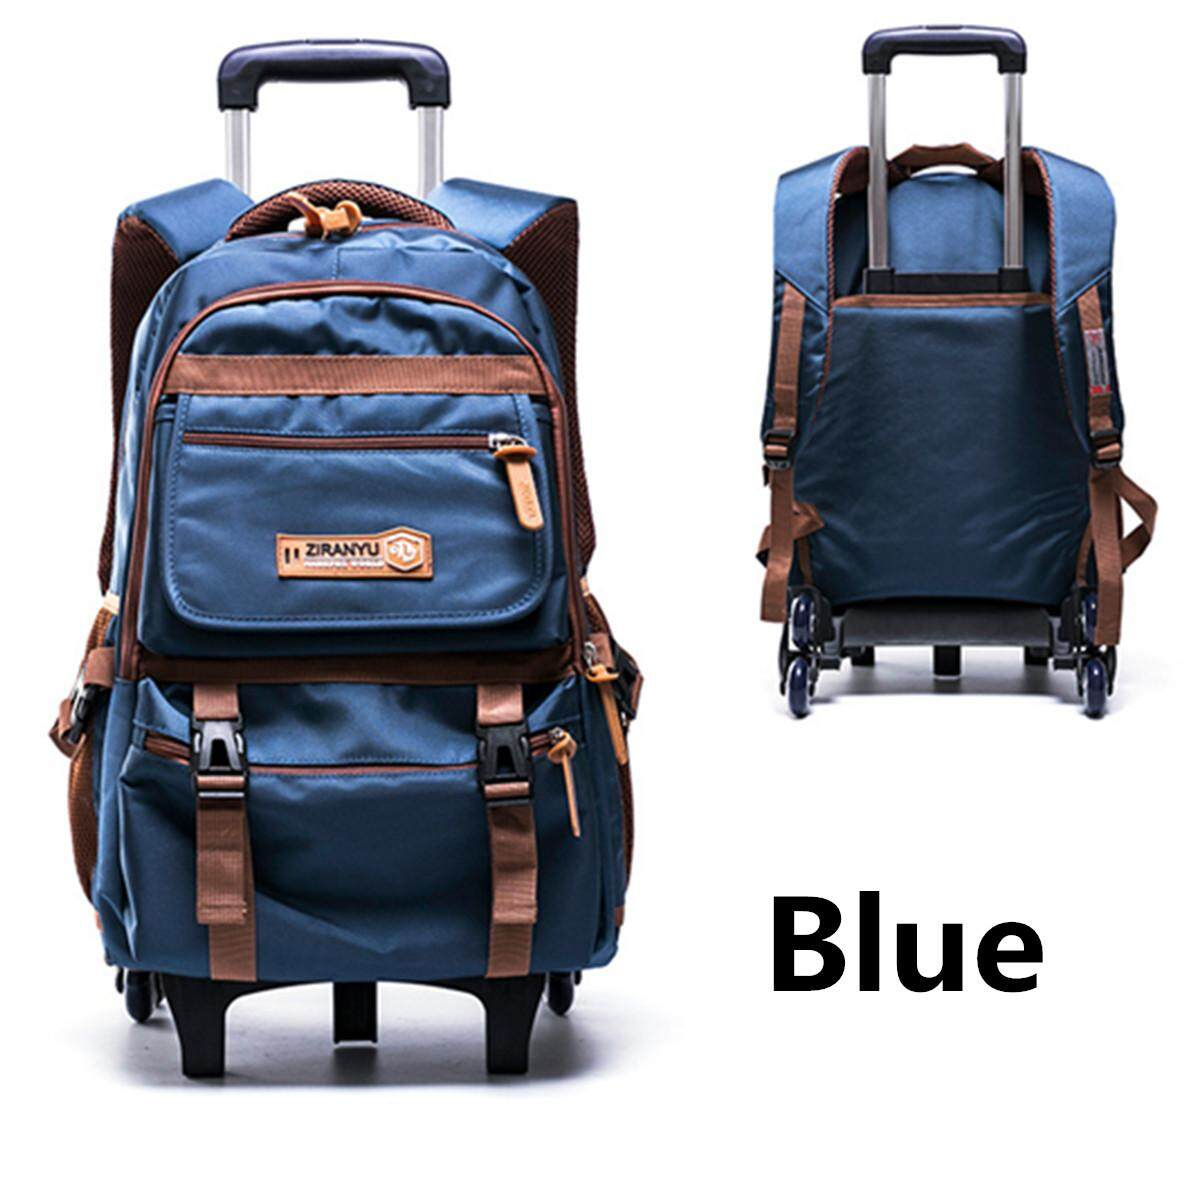 39f3ed474a Six Wheels Teenagers Student Handbag School Bag Trolley Backpack Removable  6  wheel